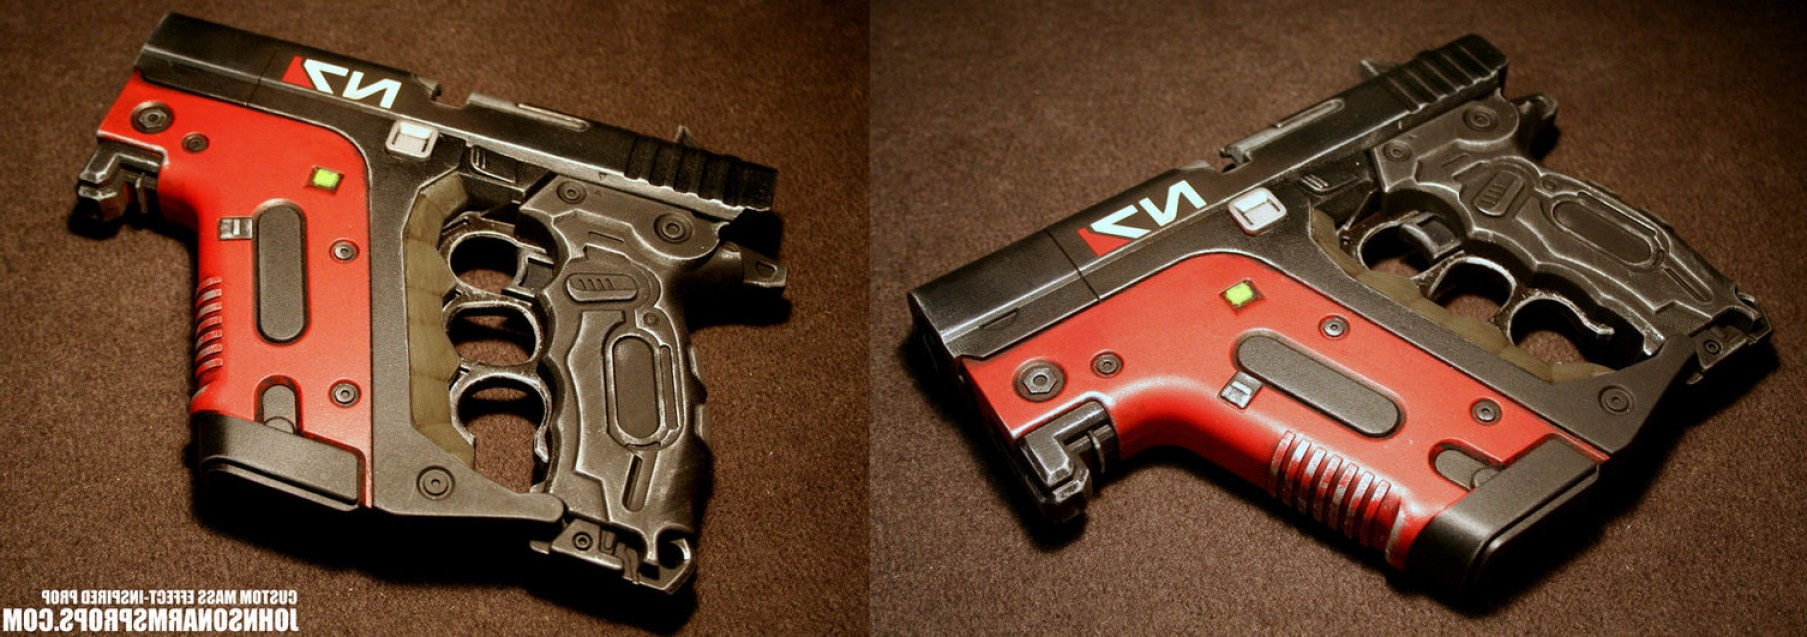 Painted Kriss Vector: Custom Mass Effect Inspired Energy Pistol